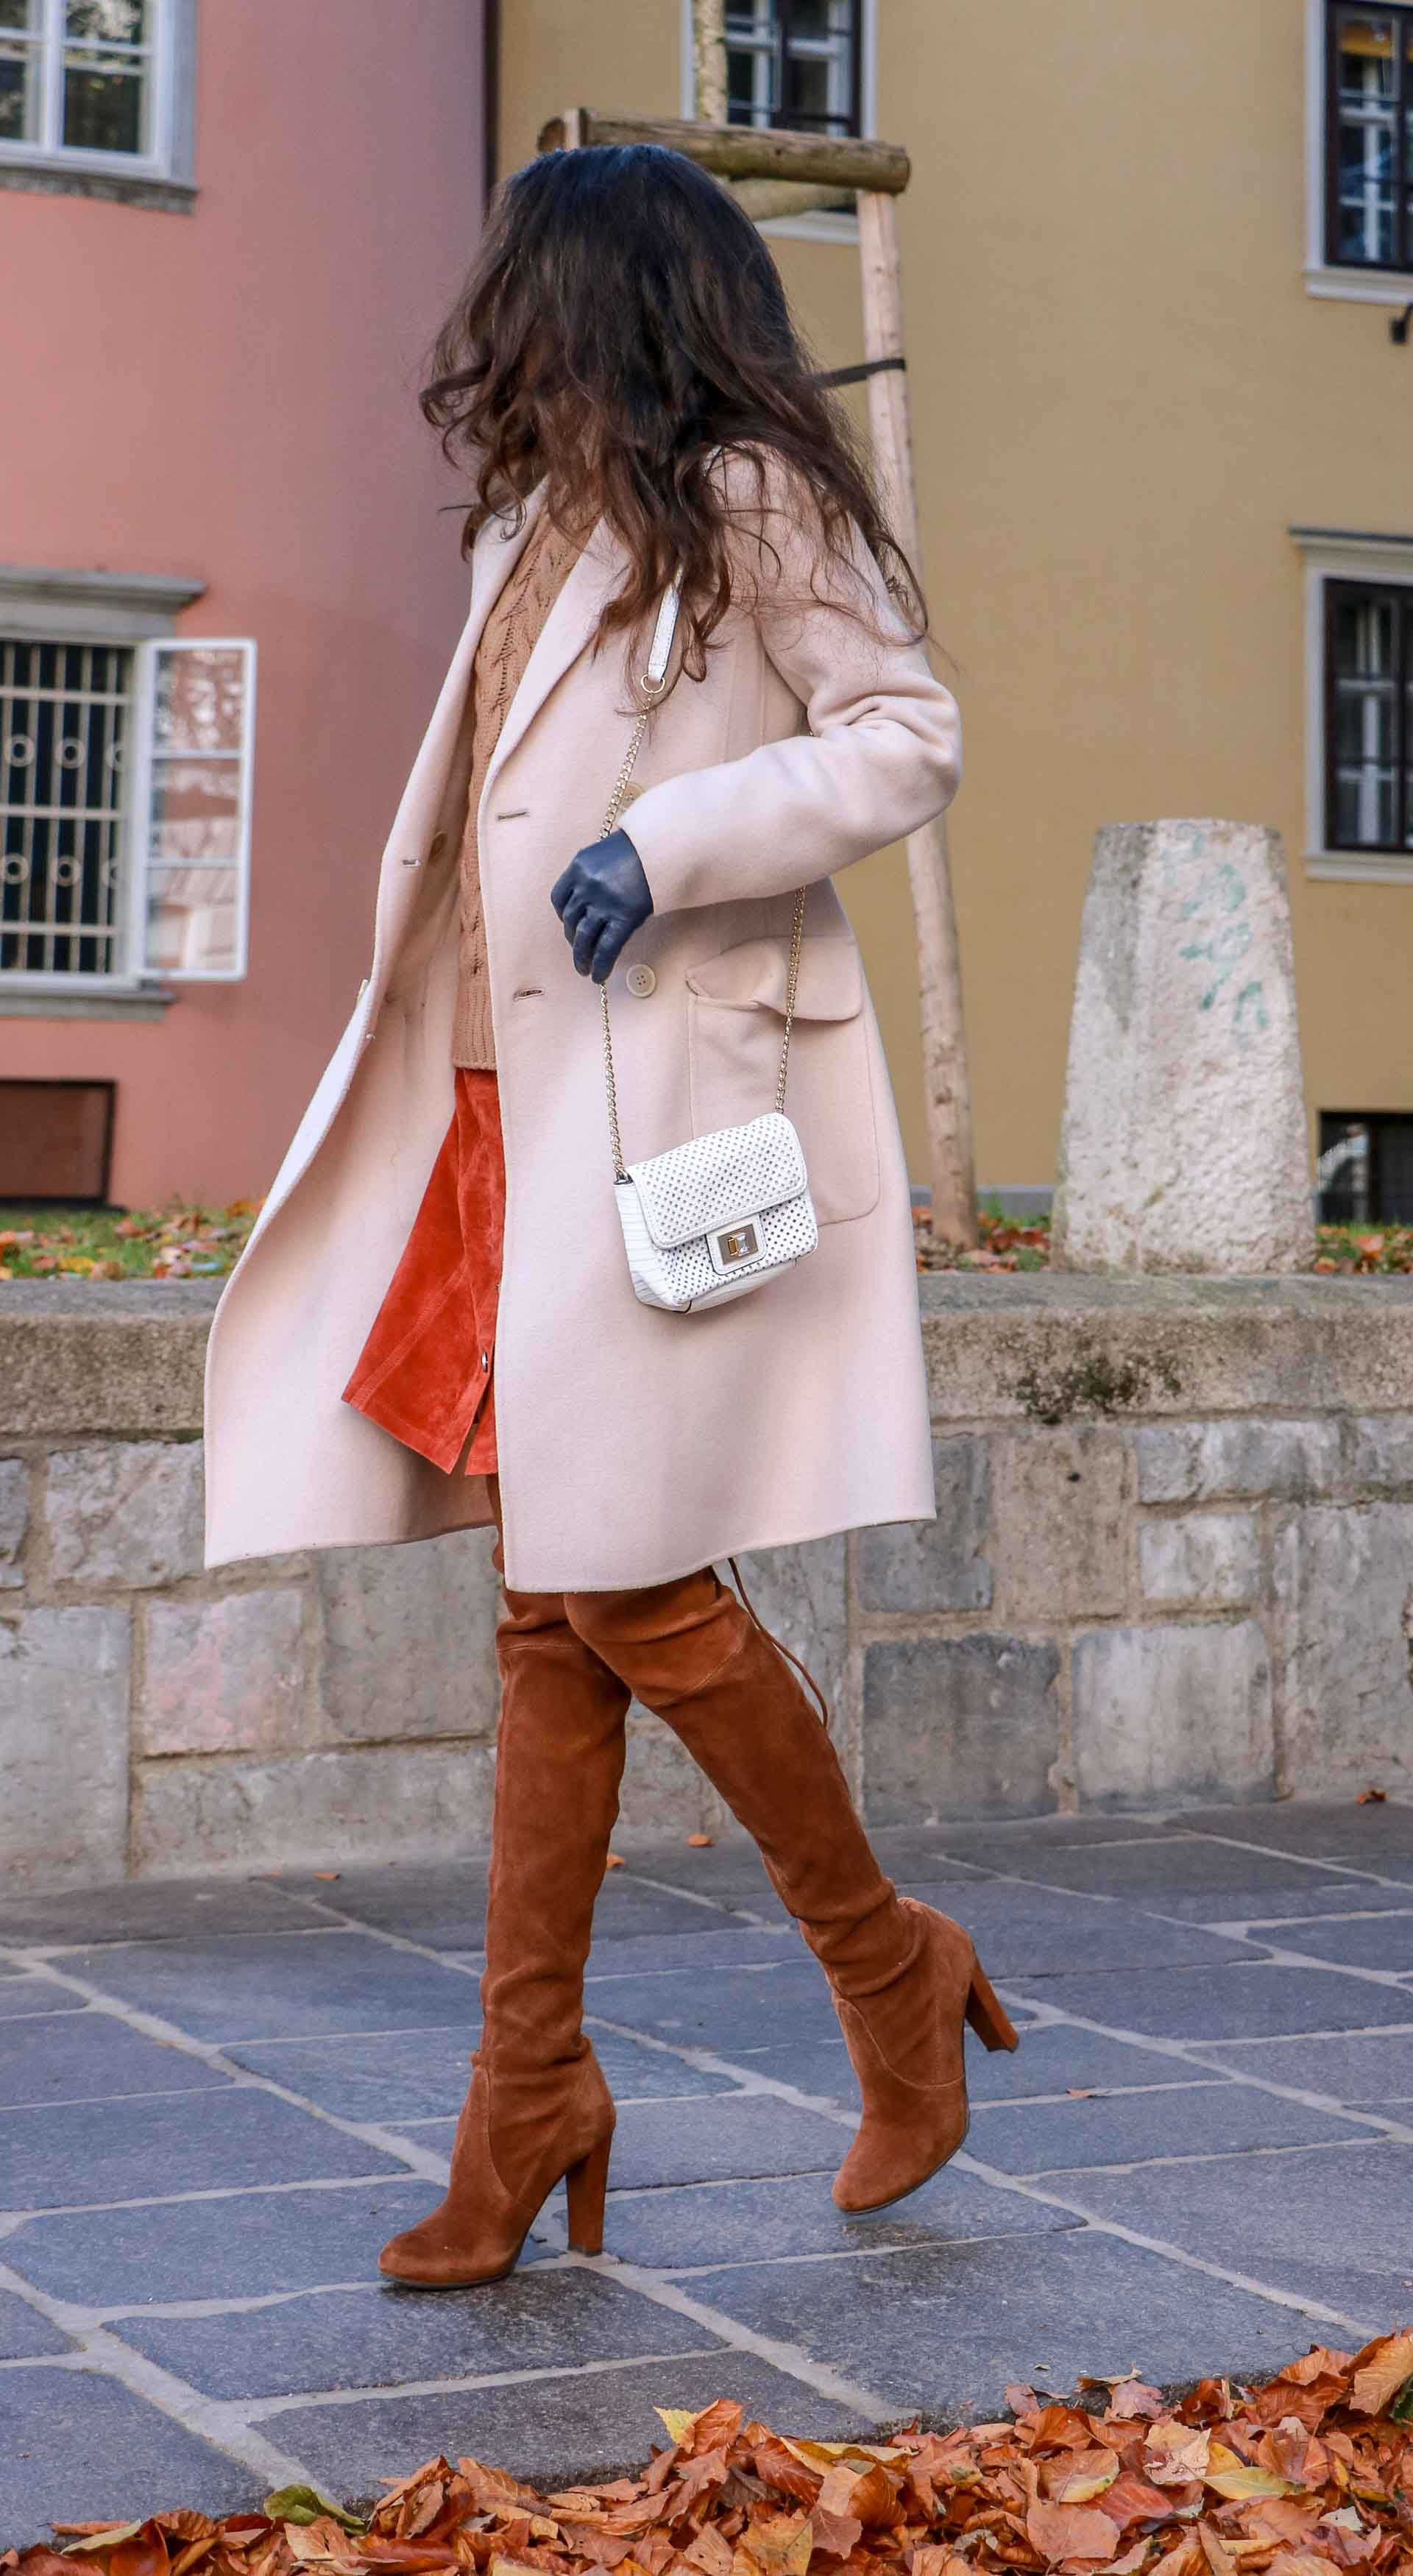 Beautiful Slovenian Fashion Blogger Veronika Lipar of Brunette from Wall wearing Max Mara camel cable knit sweater, front button brown suede skirt, Stuart Weitzman brown over the knee boots, Max Mara coat running